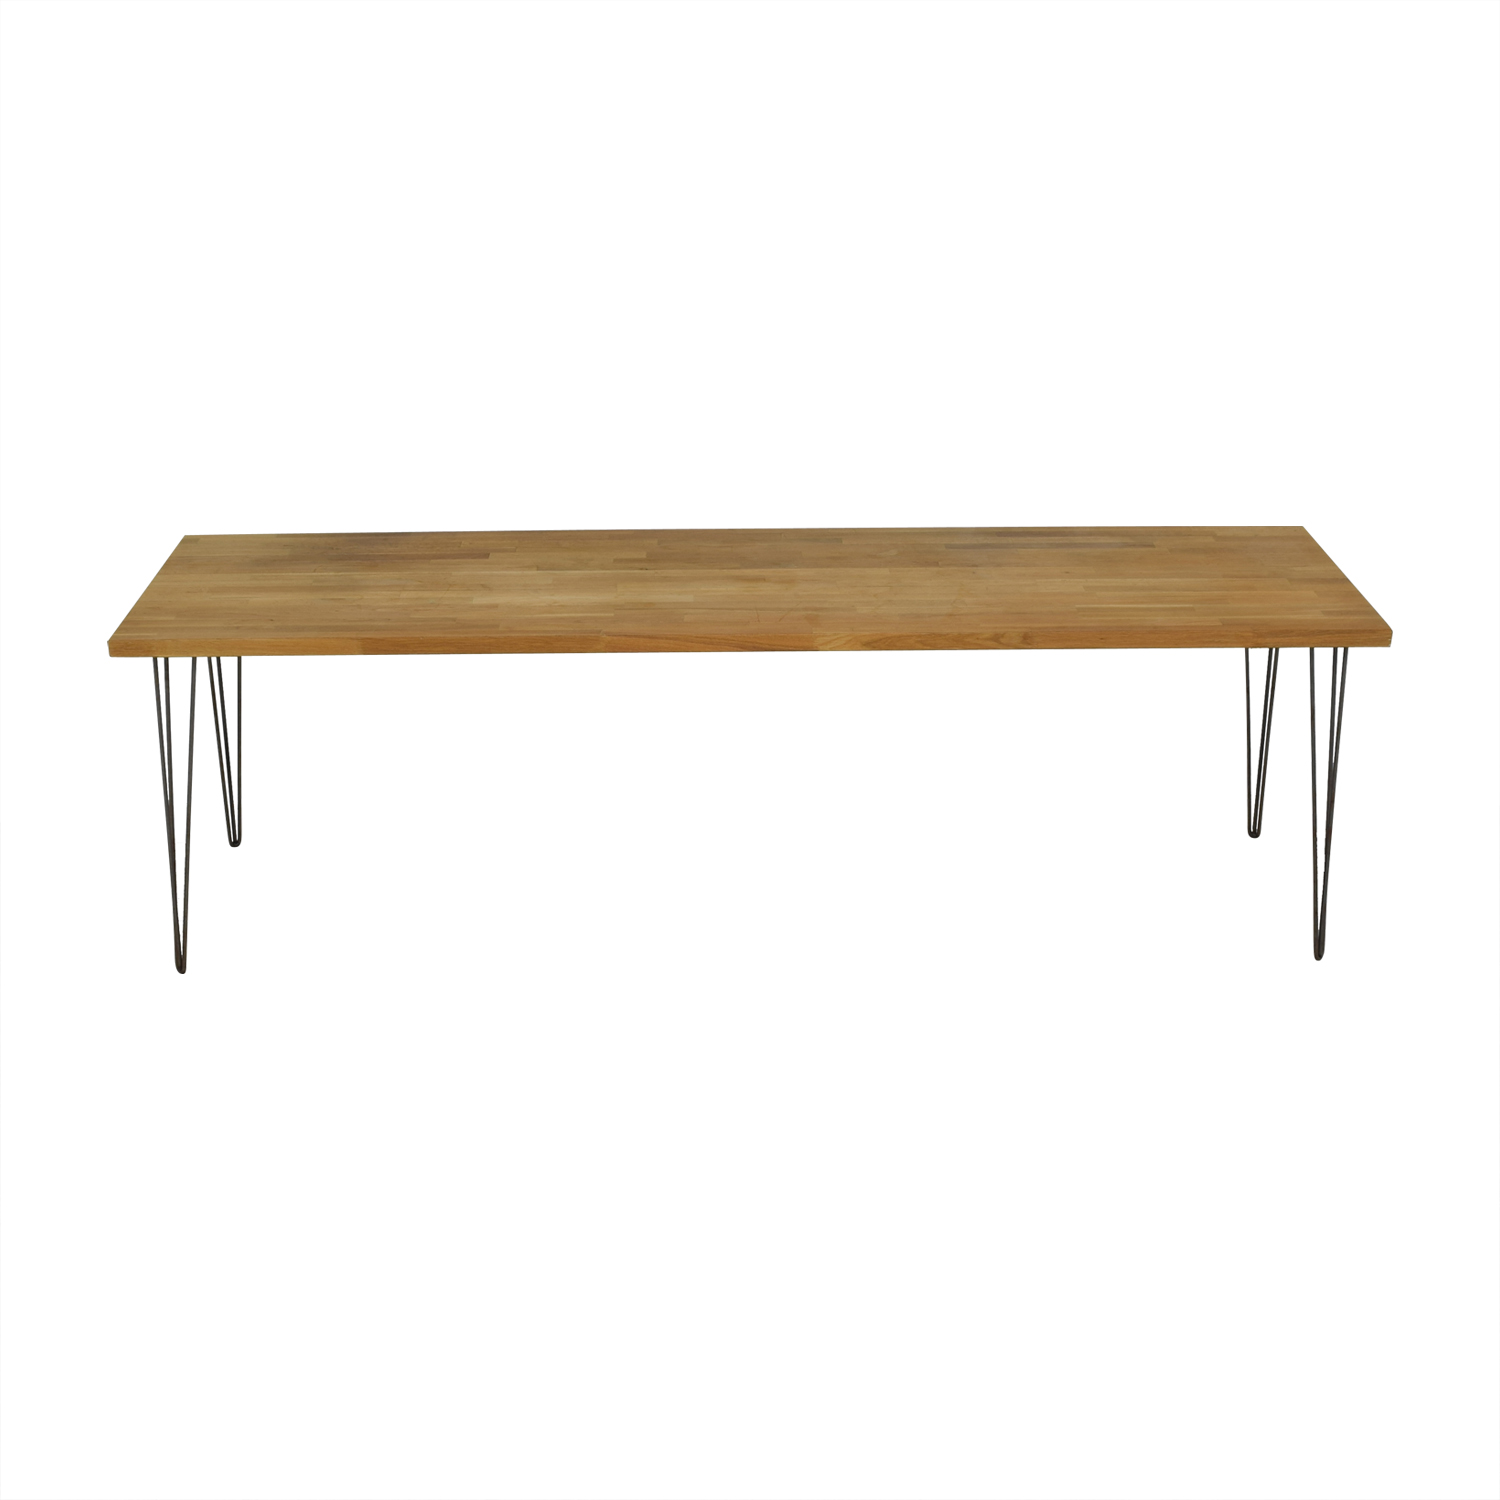 Custom Hazelnut Wood Table with Triangular Steel Legs used